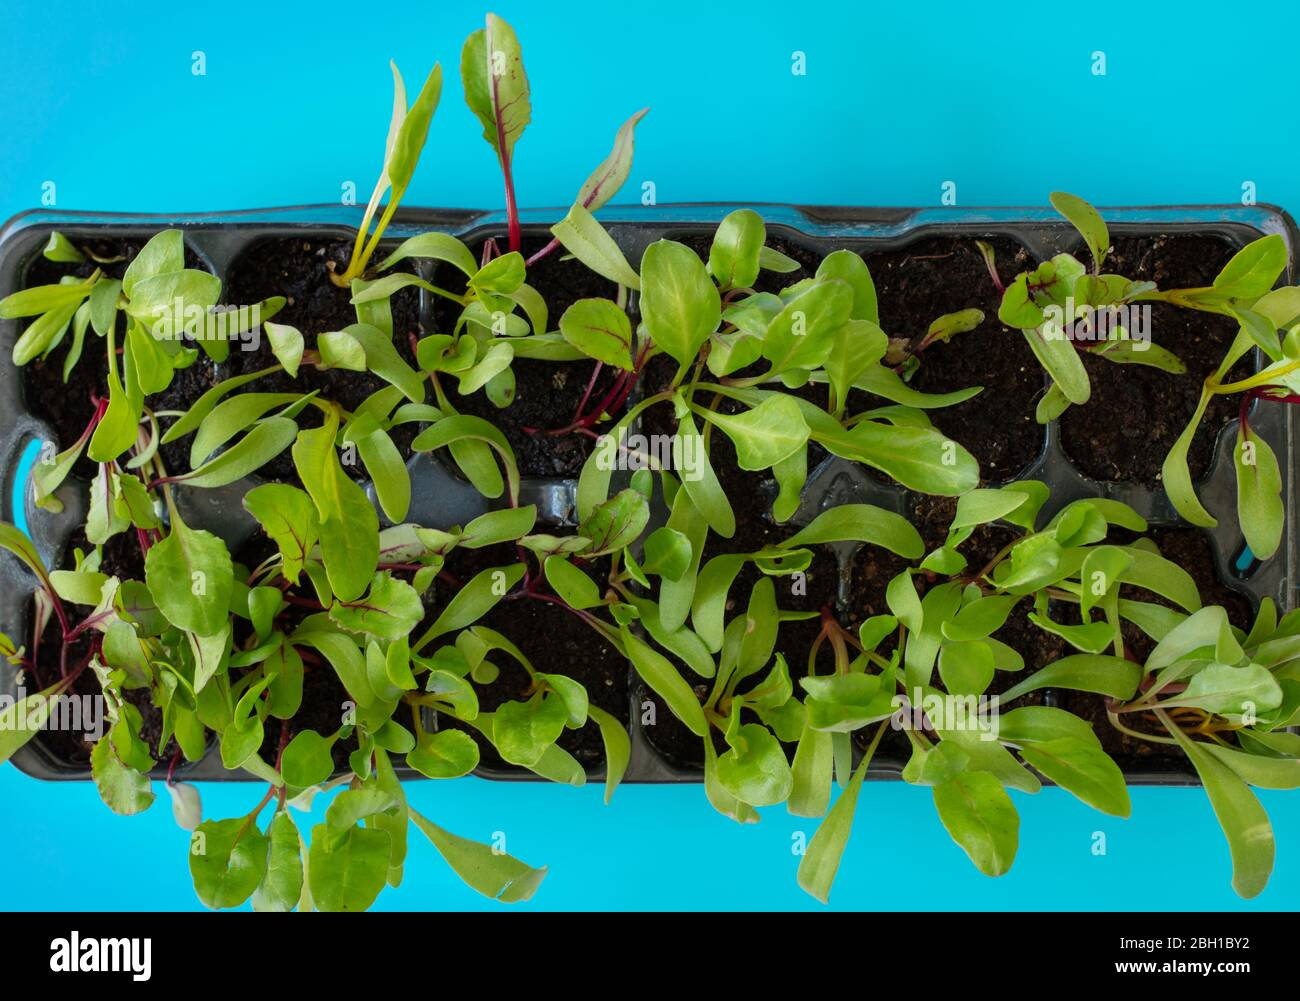 Beetroot Seedlings Seen From Above In A Plug Plant Tray Stock Photo Alamy